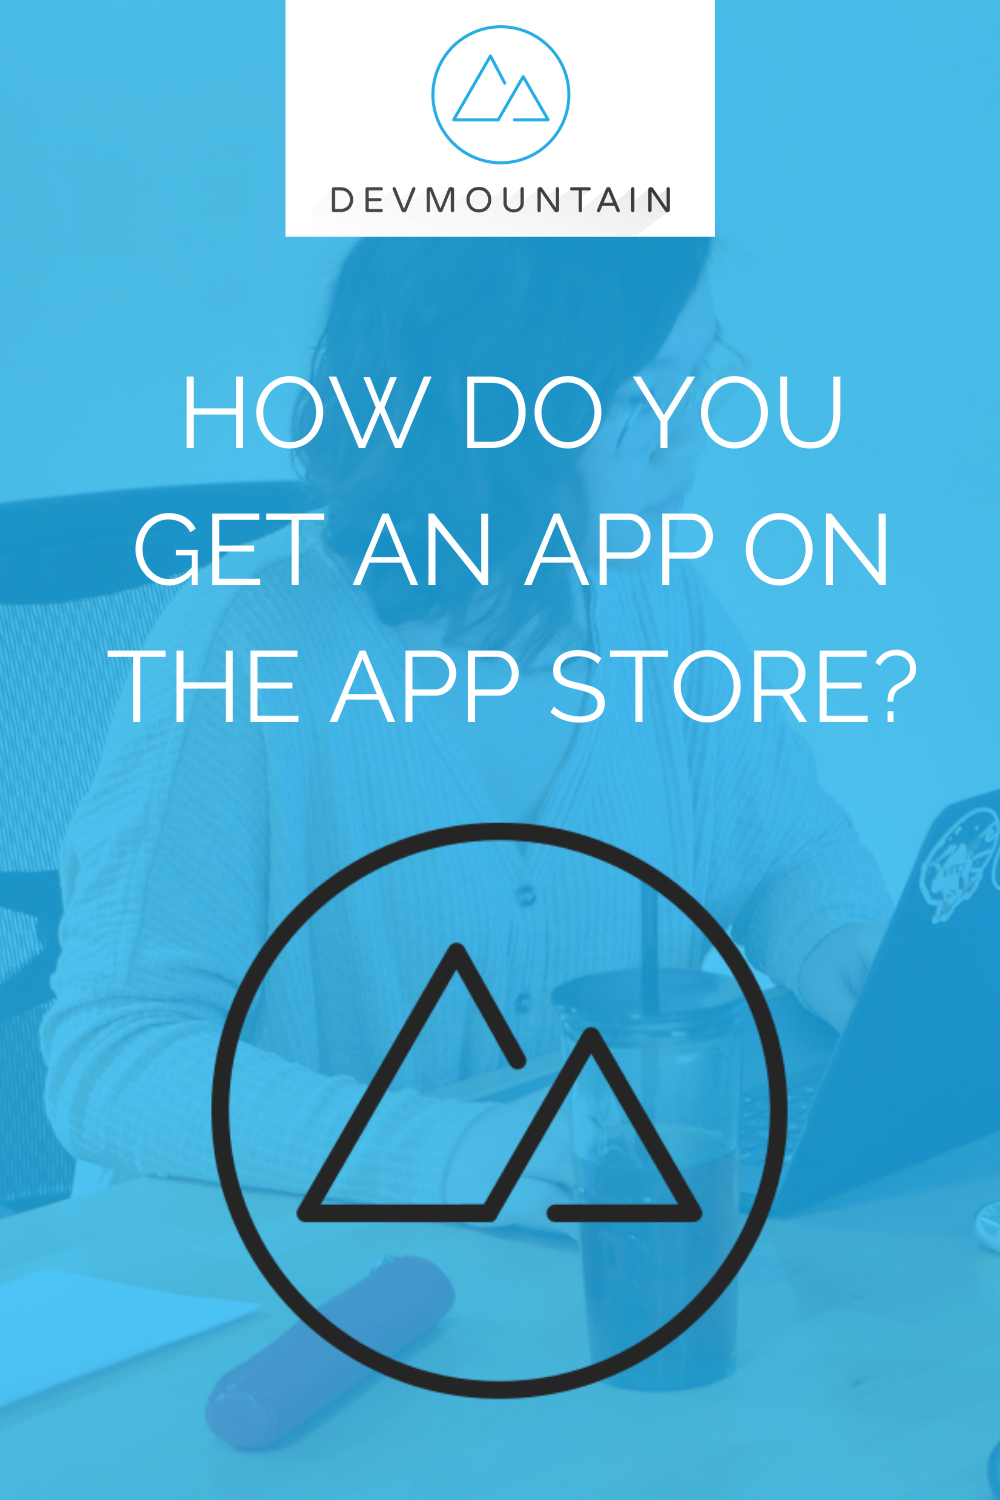 How Do You Get an App on the App Store?